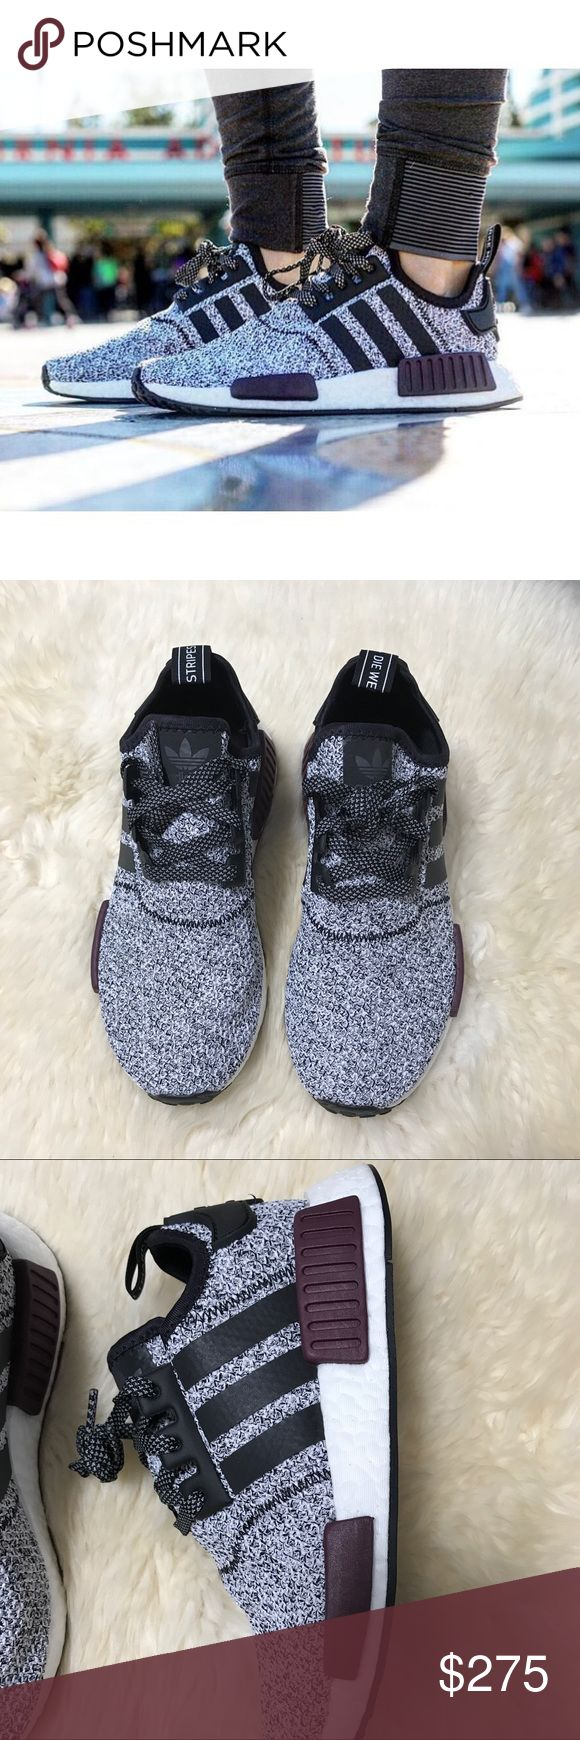 Adidas NMD_R1 J Champs Exclusive Sneakers •NMD R1 Champs Exclusive - BA7841  •Youth size 6 = Women's size 7  •New in box.  •No trades. No paypal. No mercari. Adidas Shoes Sneakers